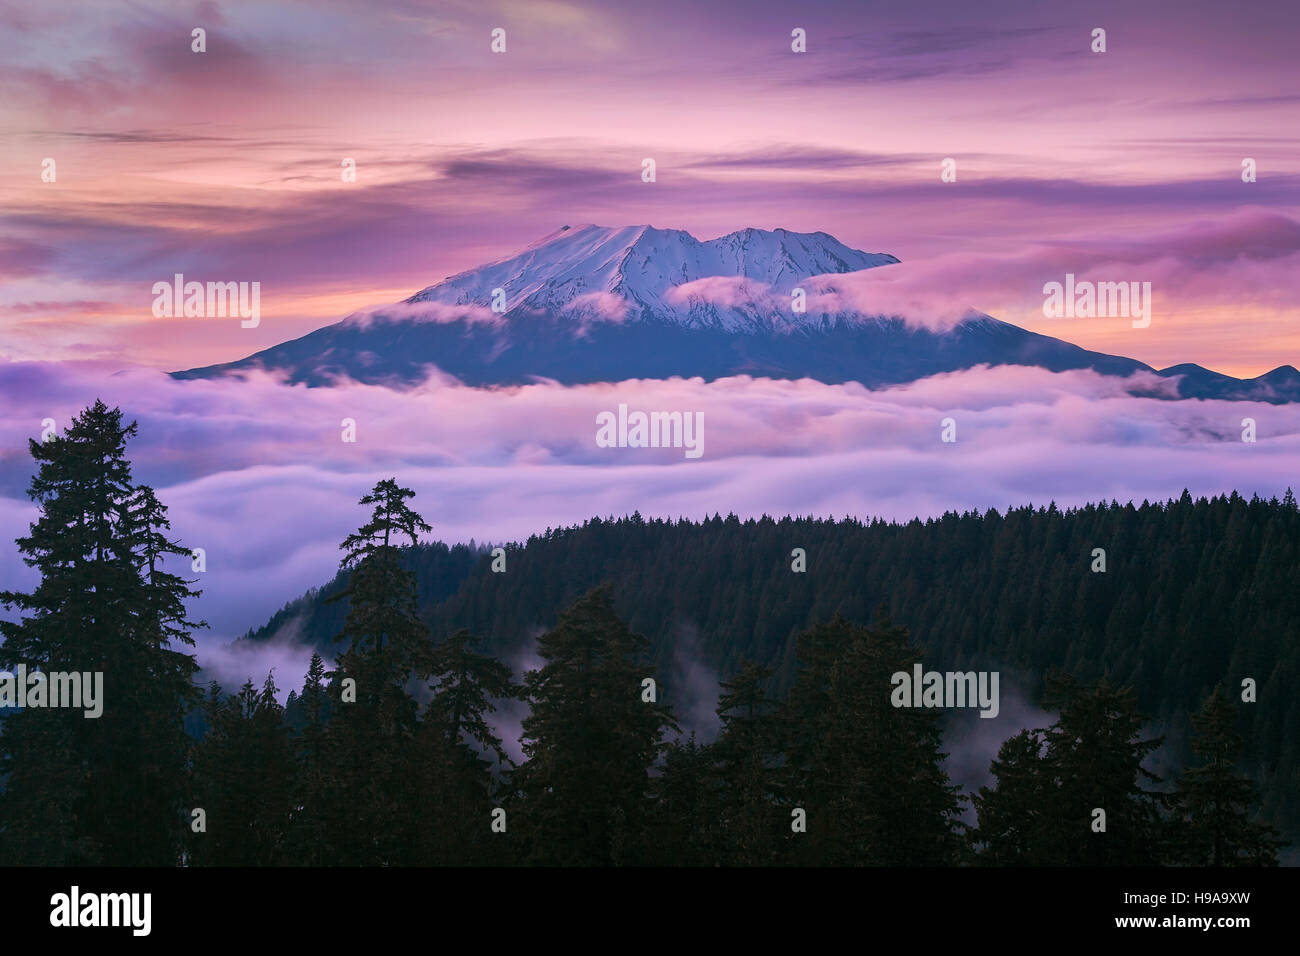 View of Mount St Helens sunset from McClellan Viewpoint in Gifford Pinchot National Forest Washington - Stock Image